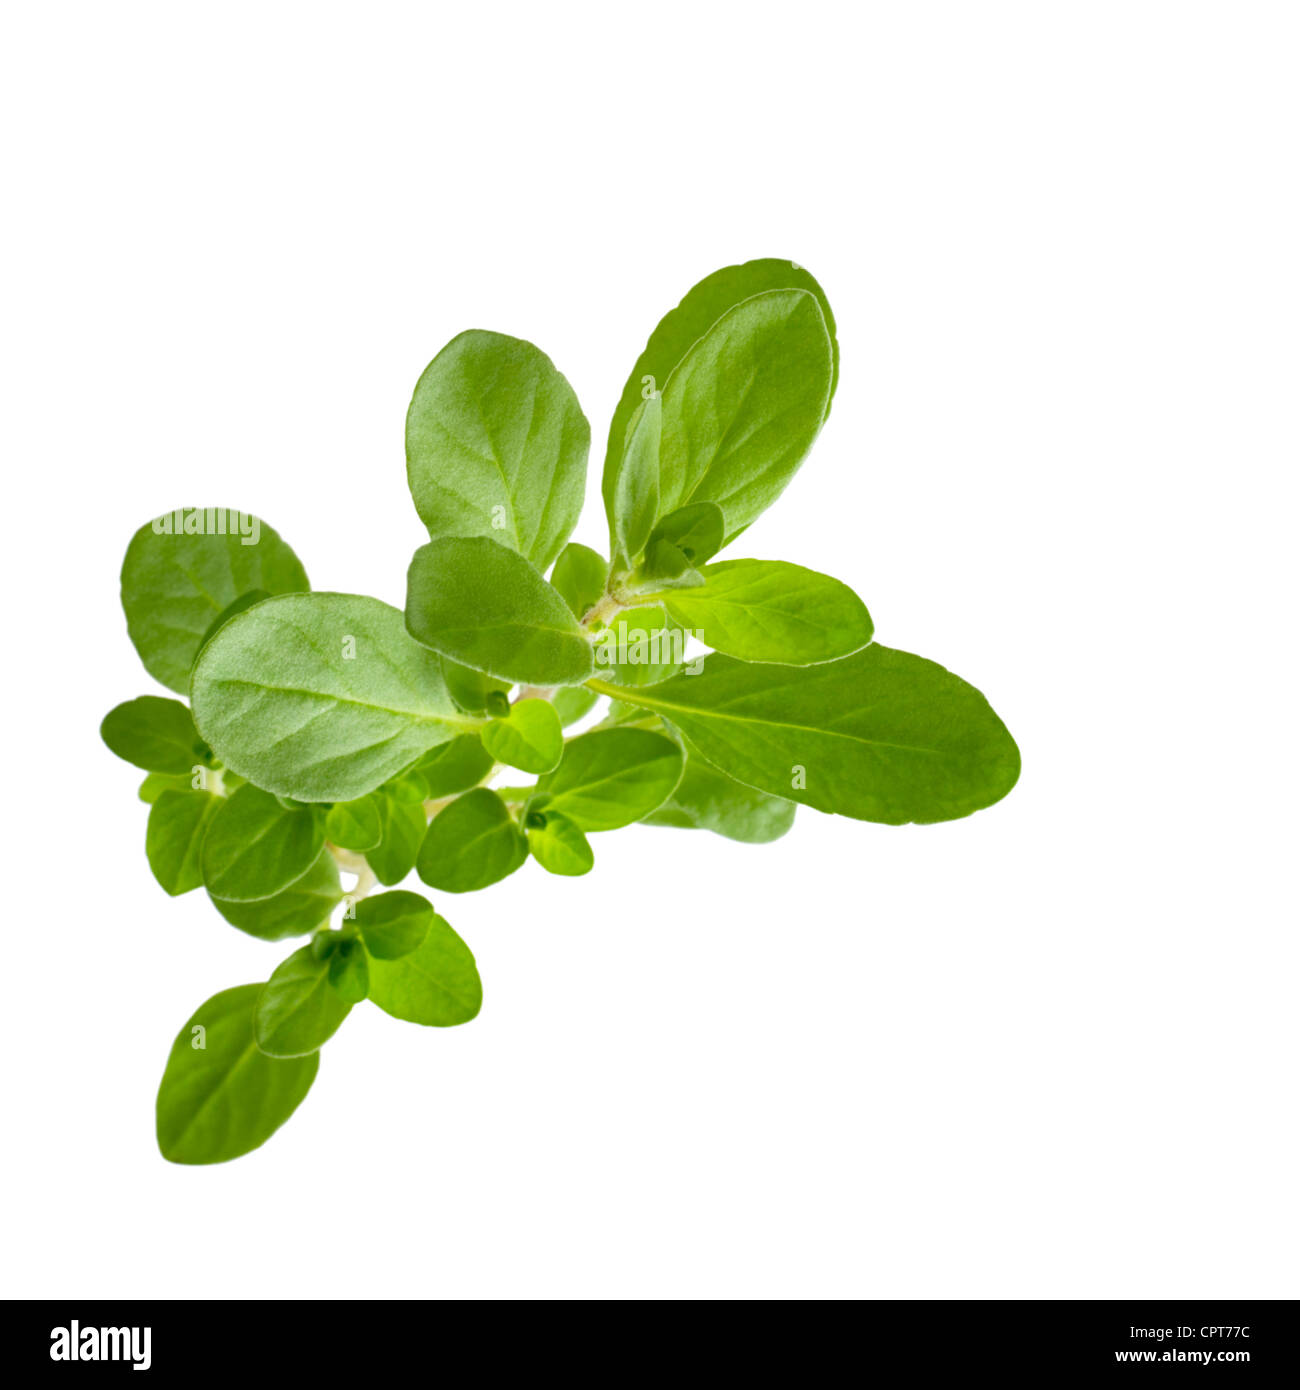 Marjoram on white background, viewed from above. - Stock Image